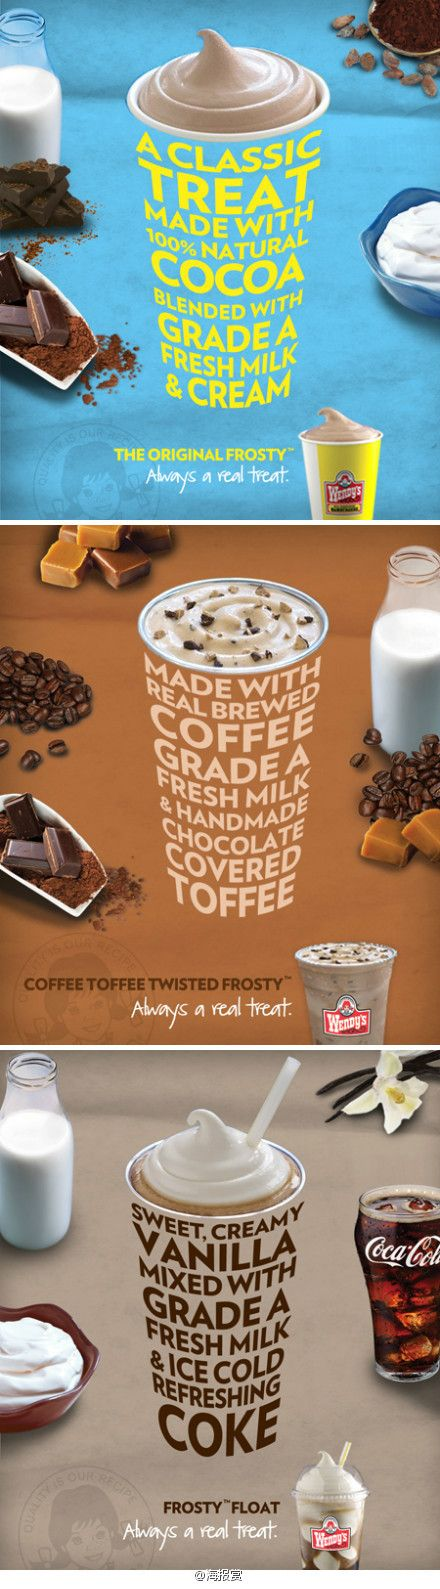 Wendy's Frosty Campaign In-store table decals - Saatchi & Saatchi